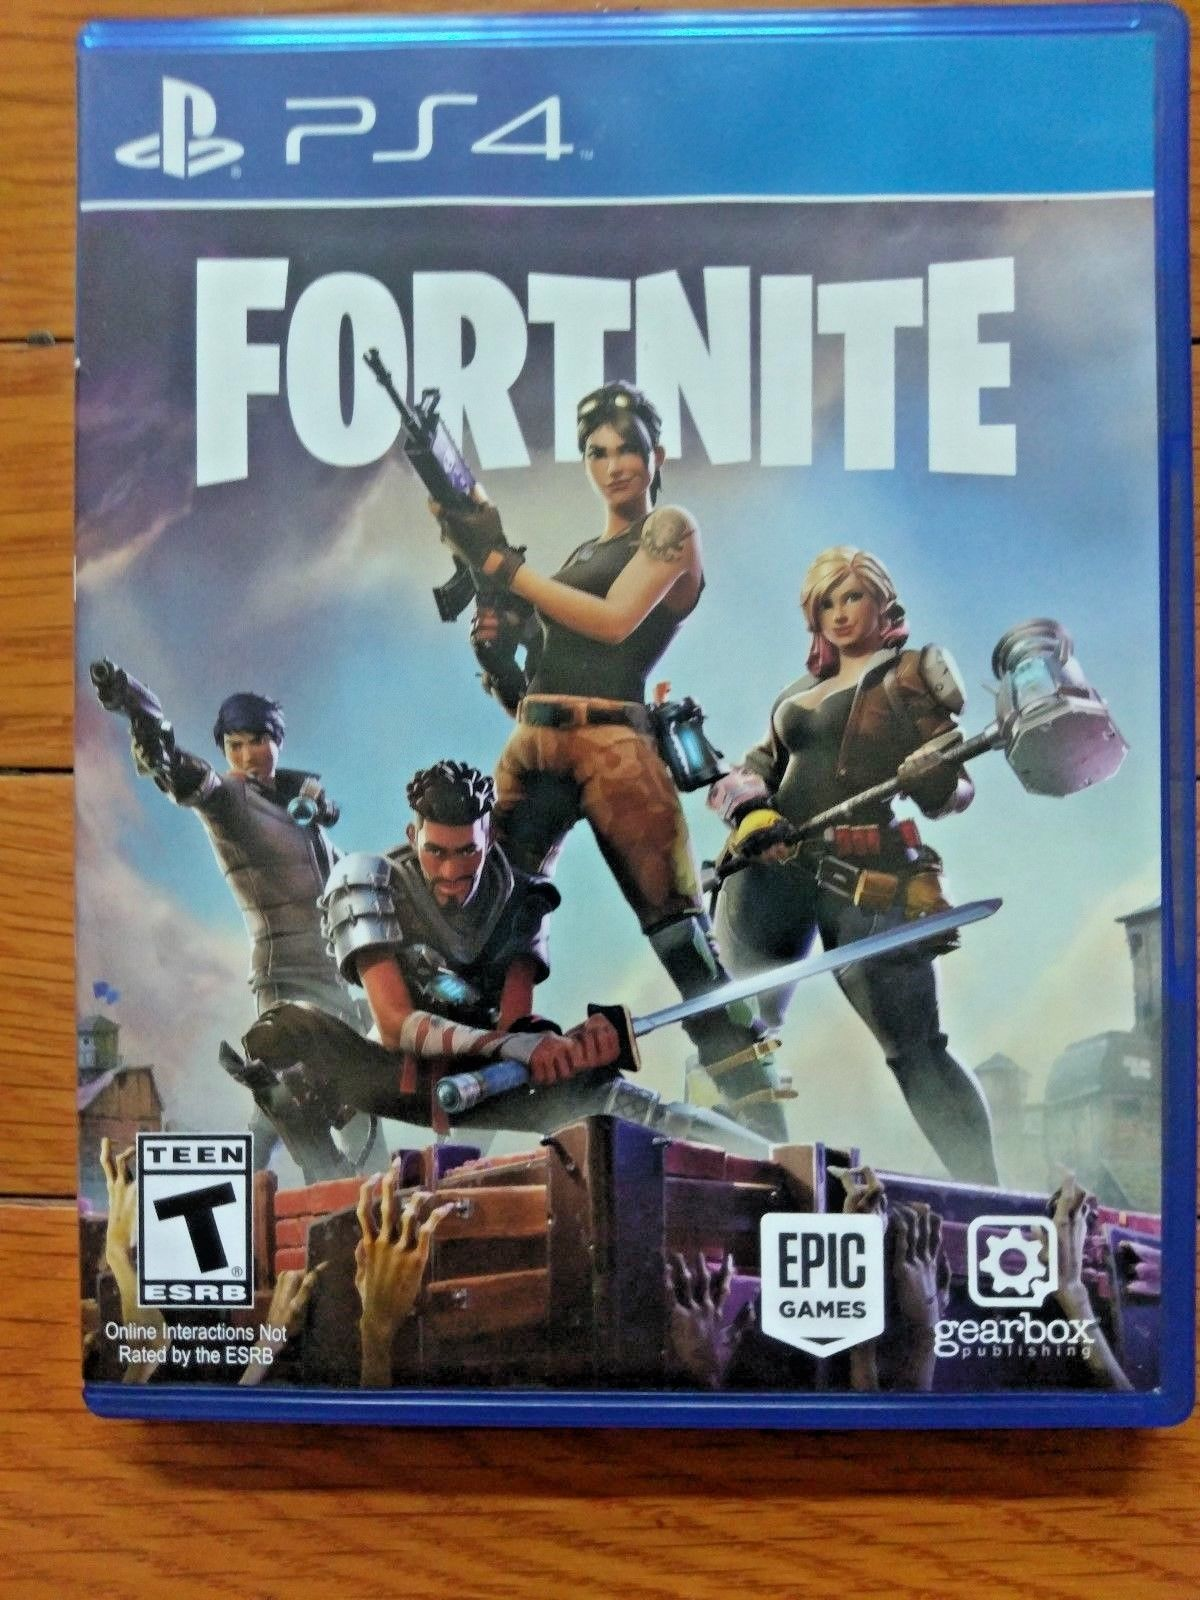 Fortnite Sony Playstation 4 2017 Ps4 Game 44 95 End